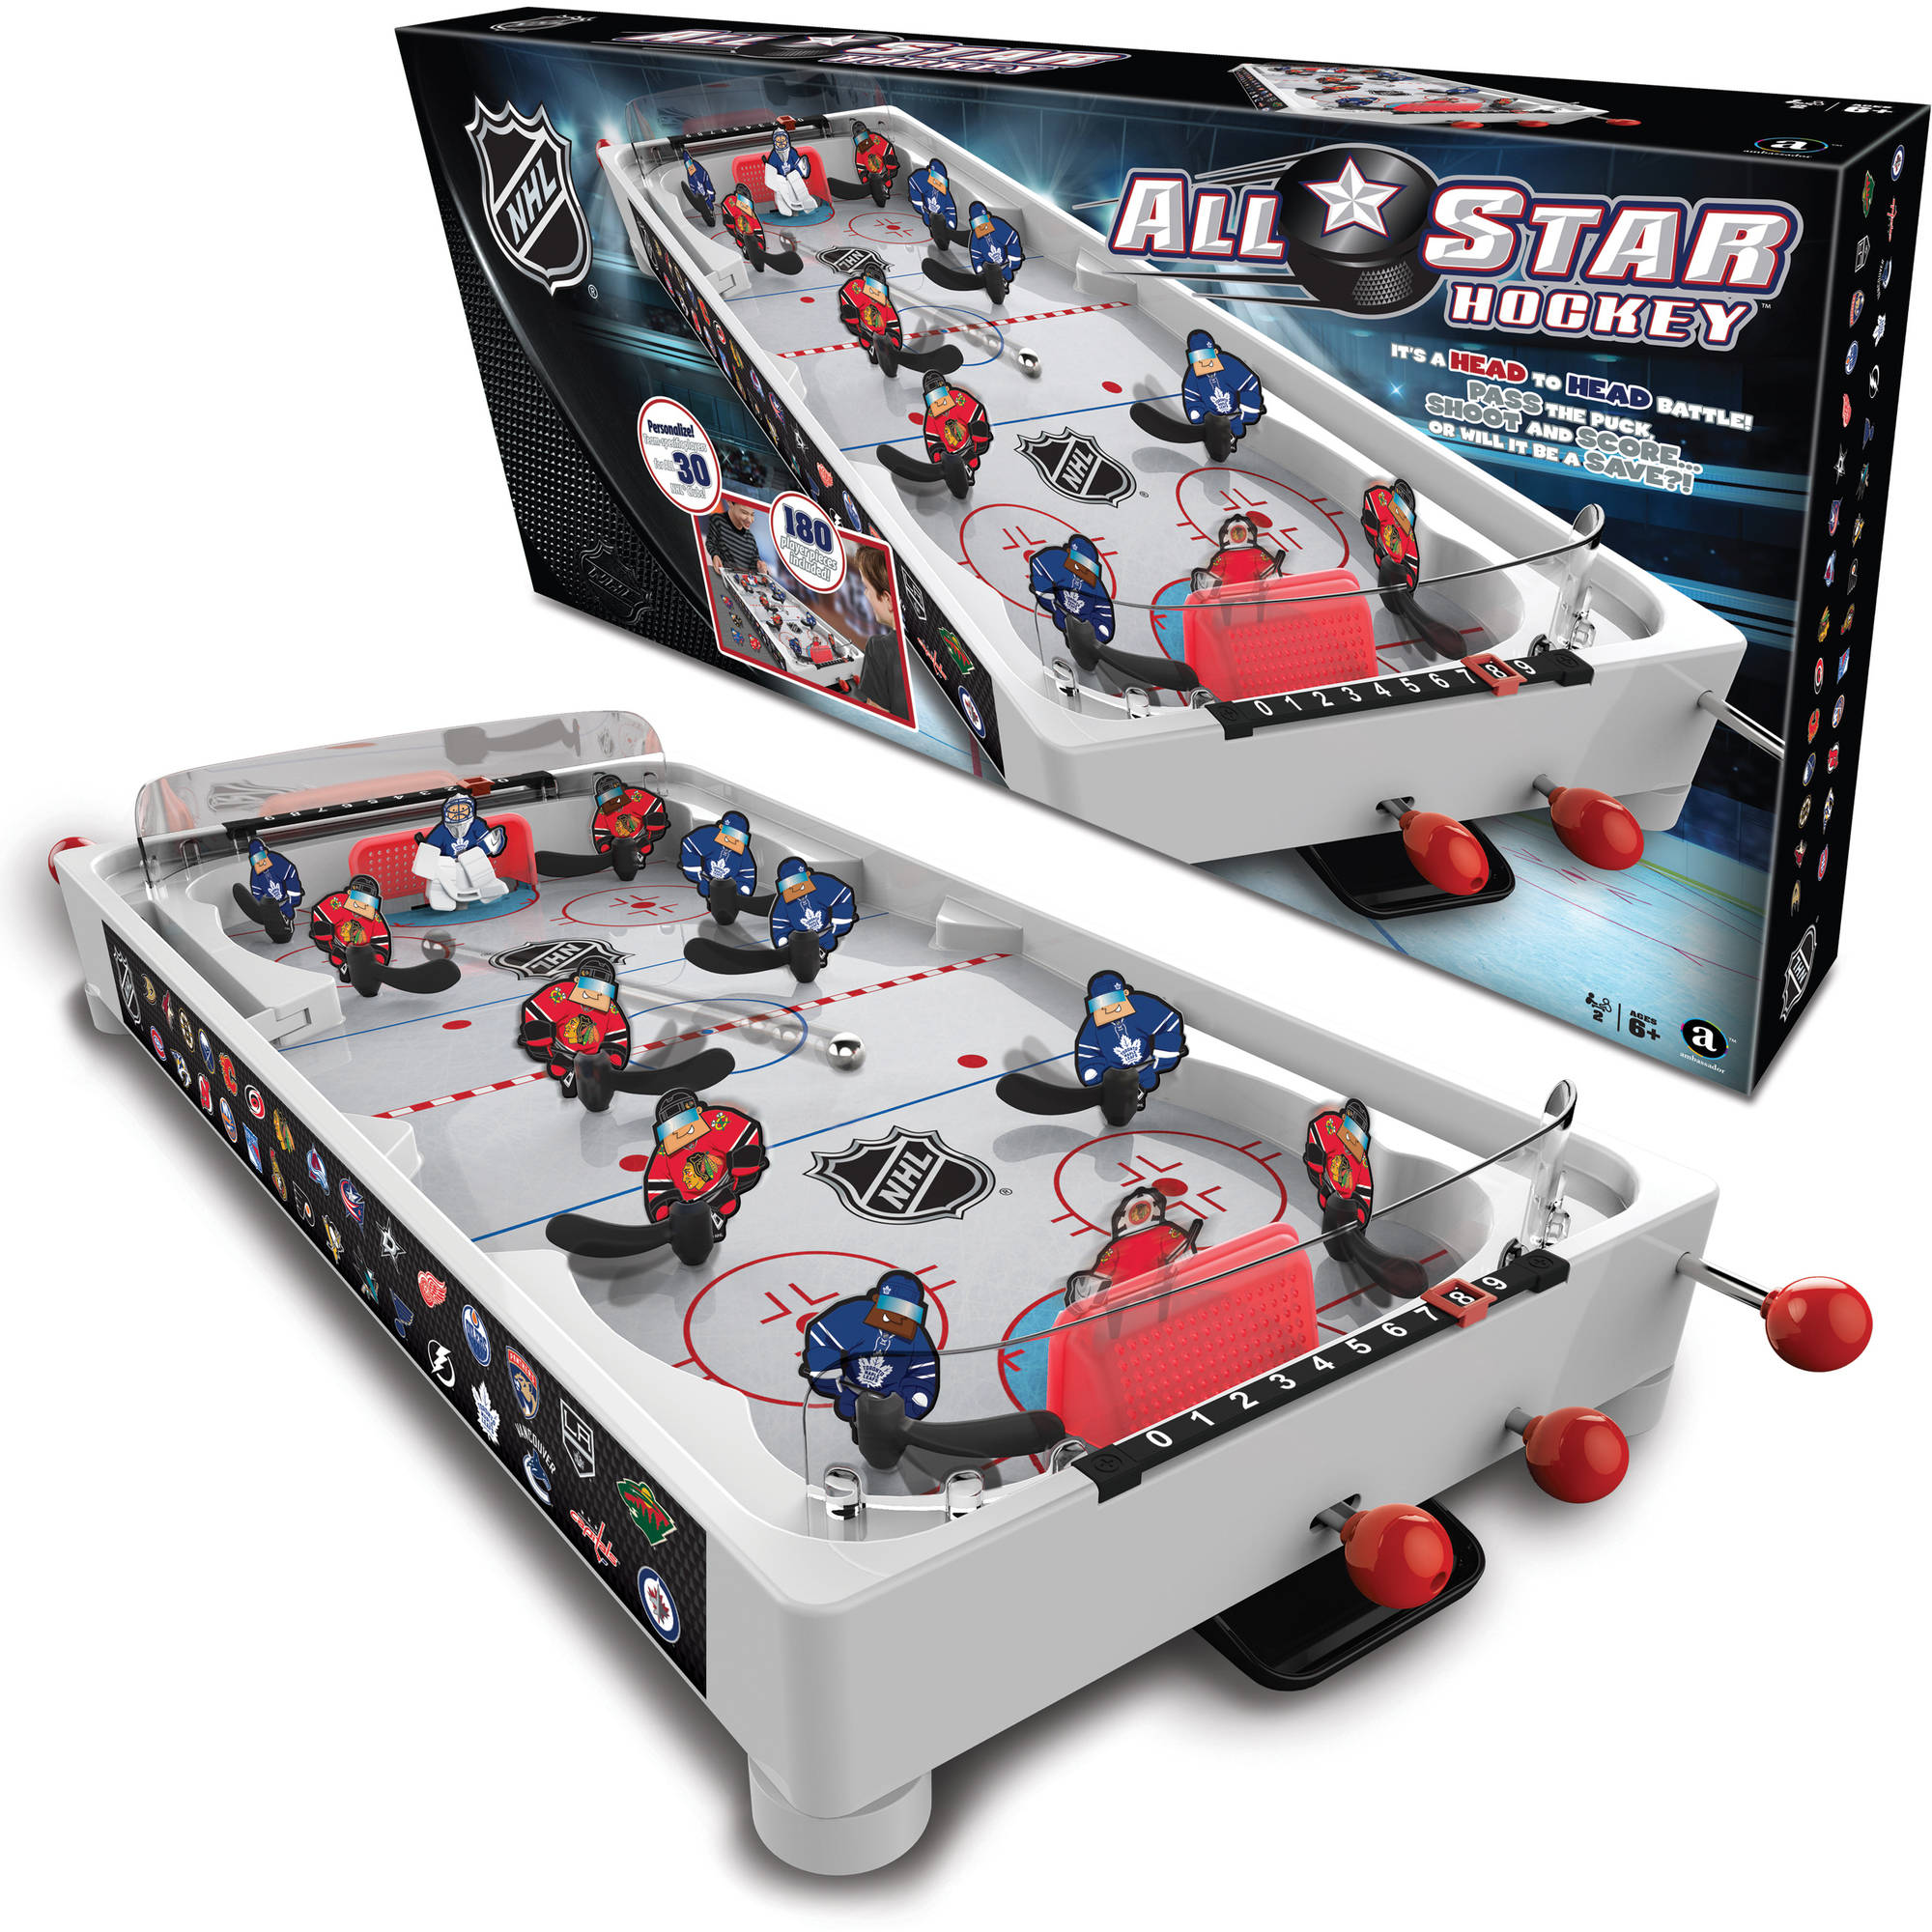 NHL All Star Hockey Game by Merchant Ambassador (Holdings) Limited